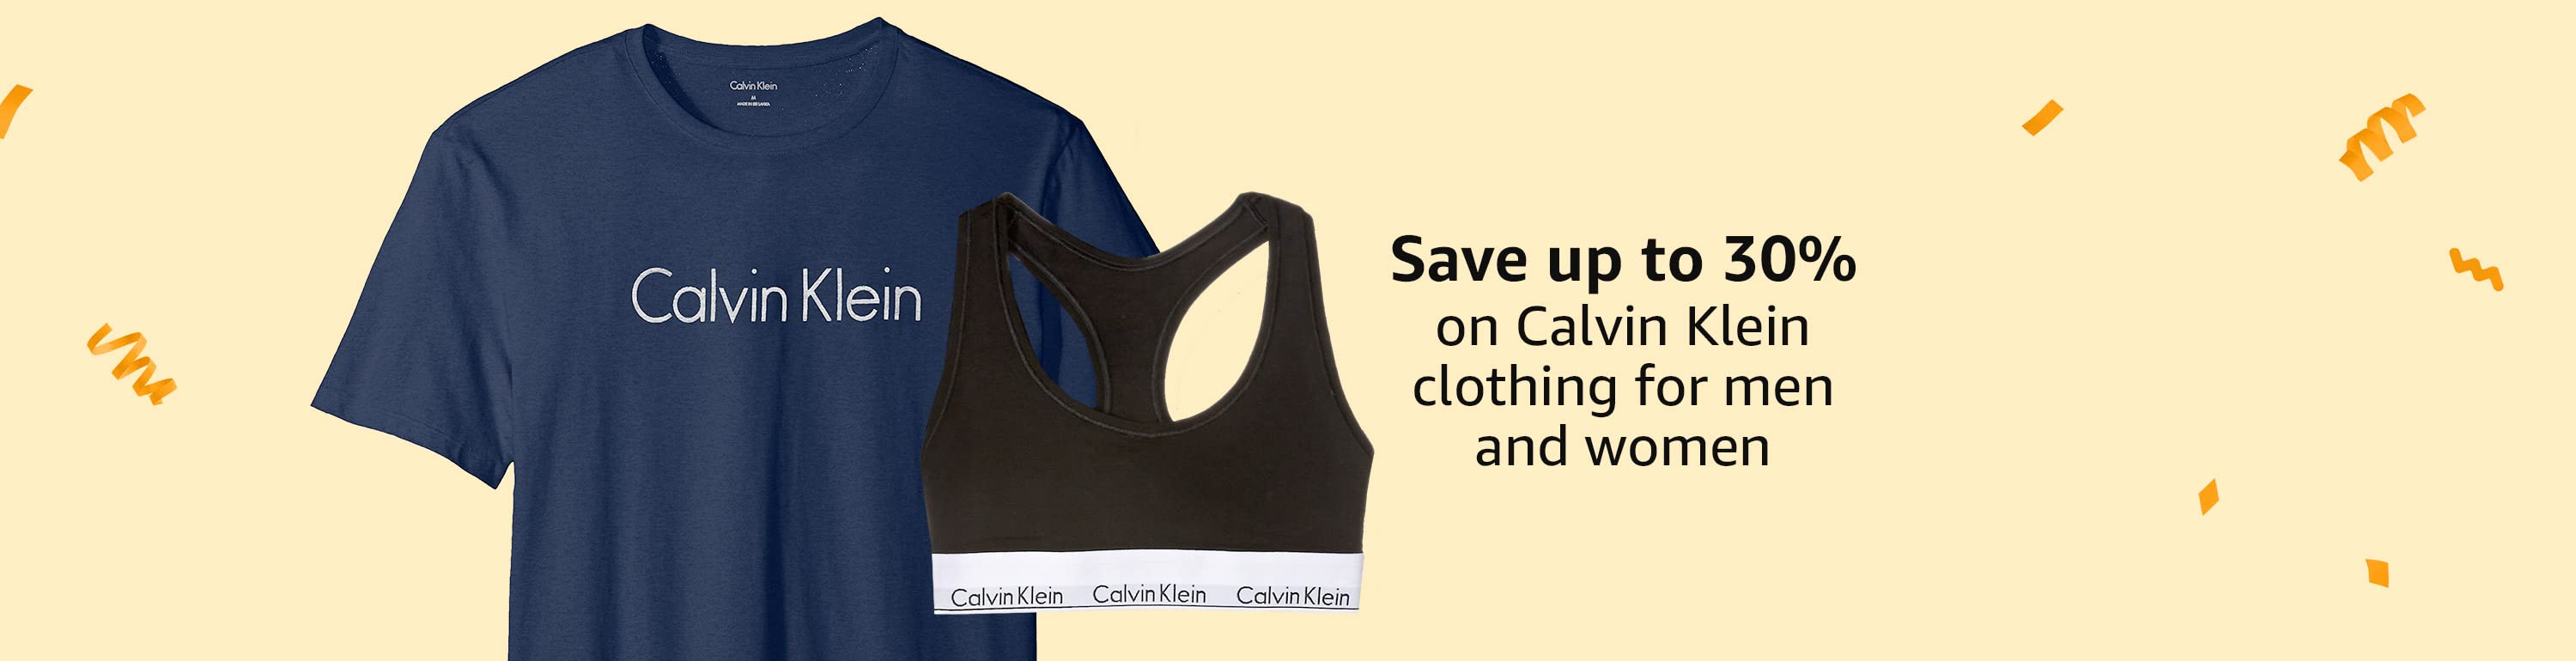 Save up to 30% on Calvin Klein clothing for men and women